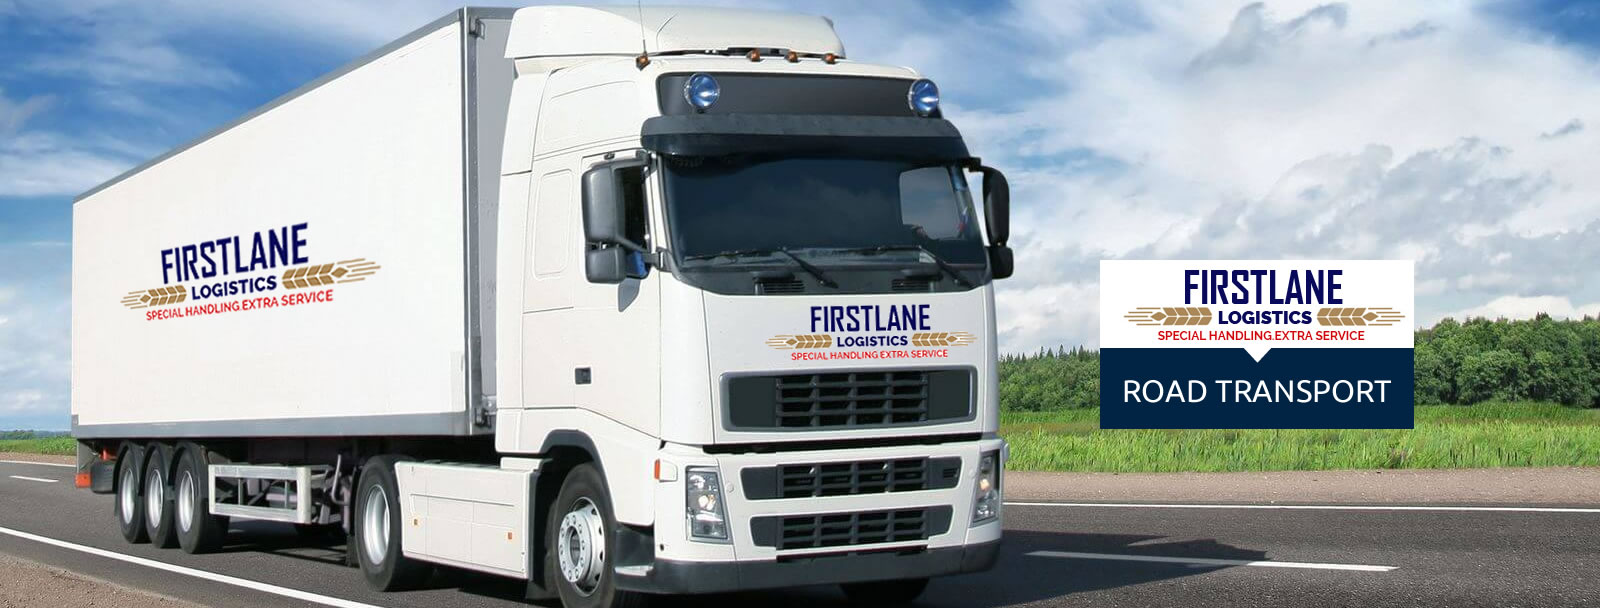 firstlane-logistics-road-transport